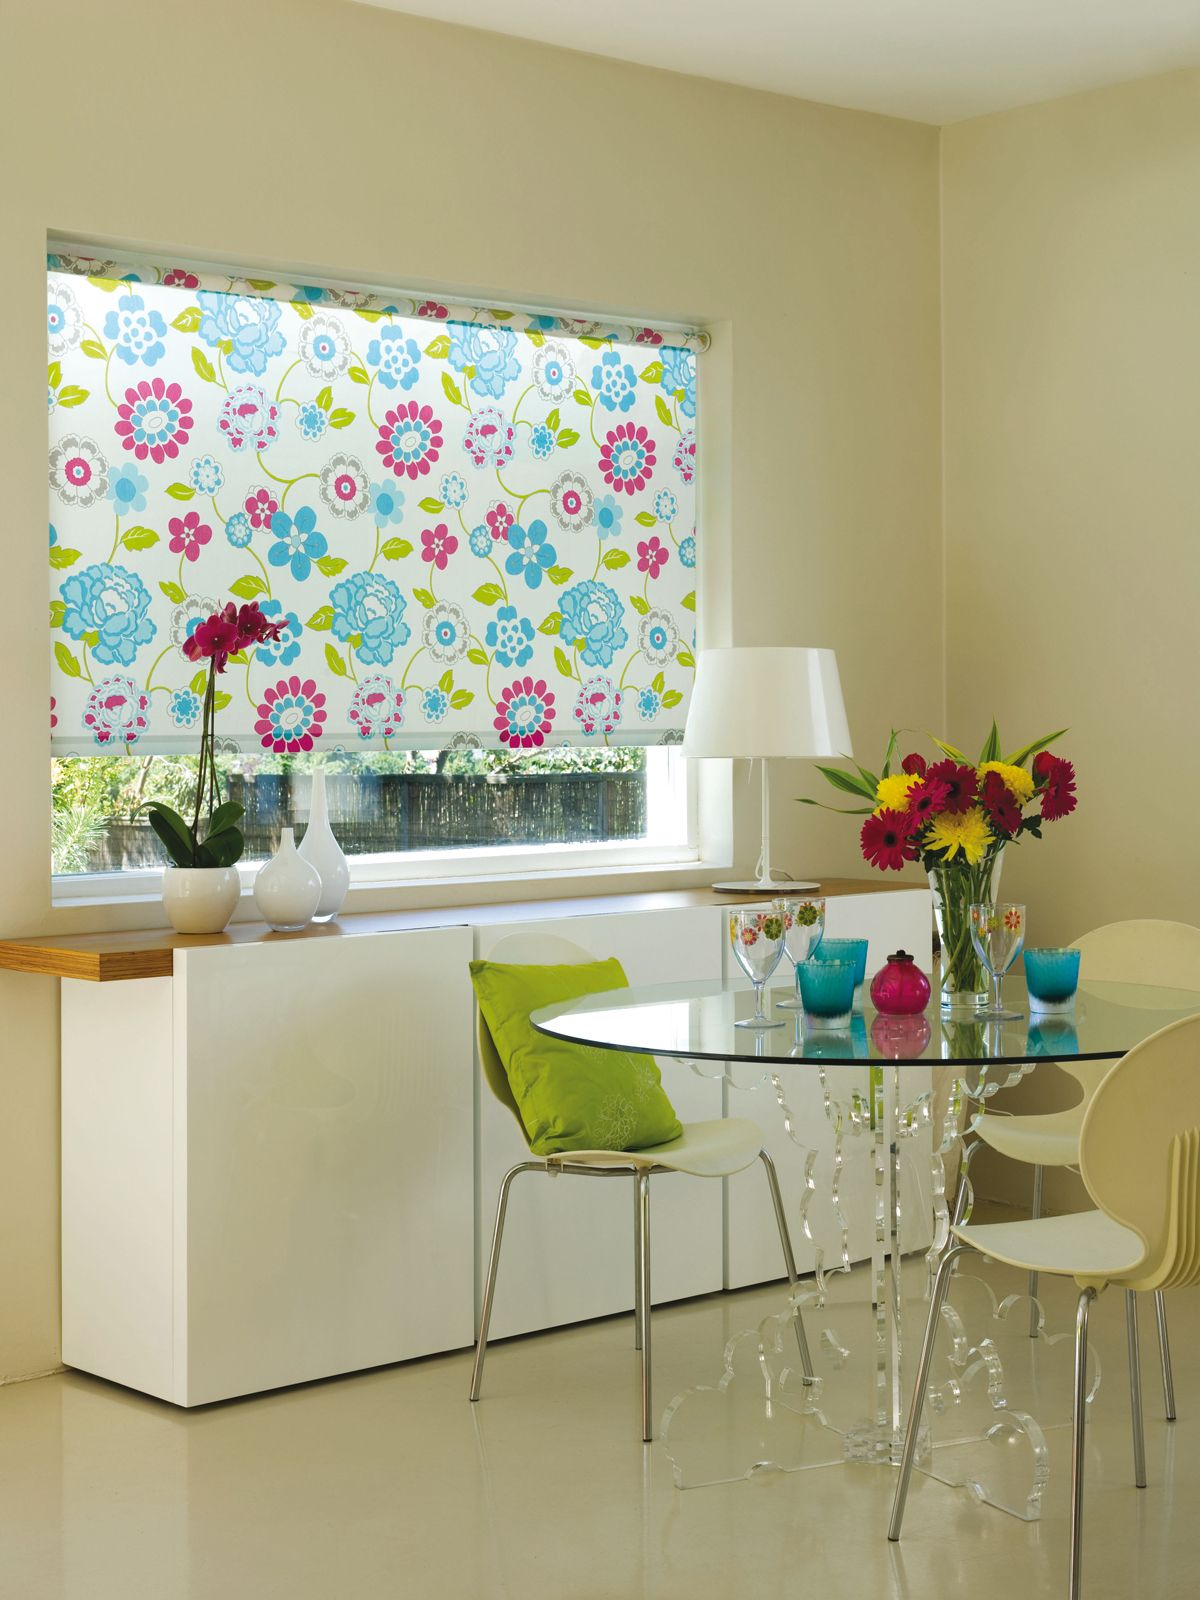 #roller #blinds for #windows http://www.blindsuk.net/rollermm/decora-mojo-disco.html